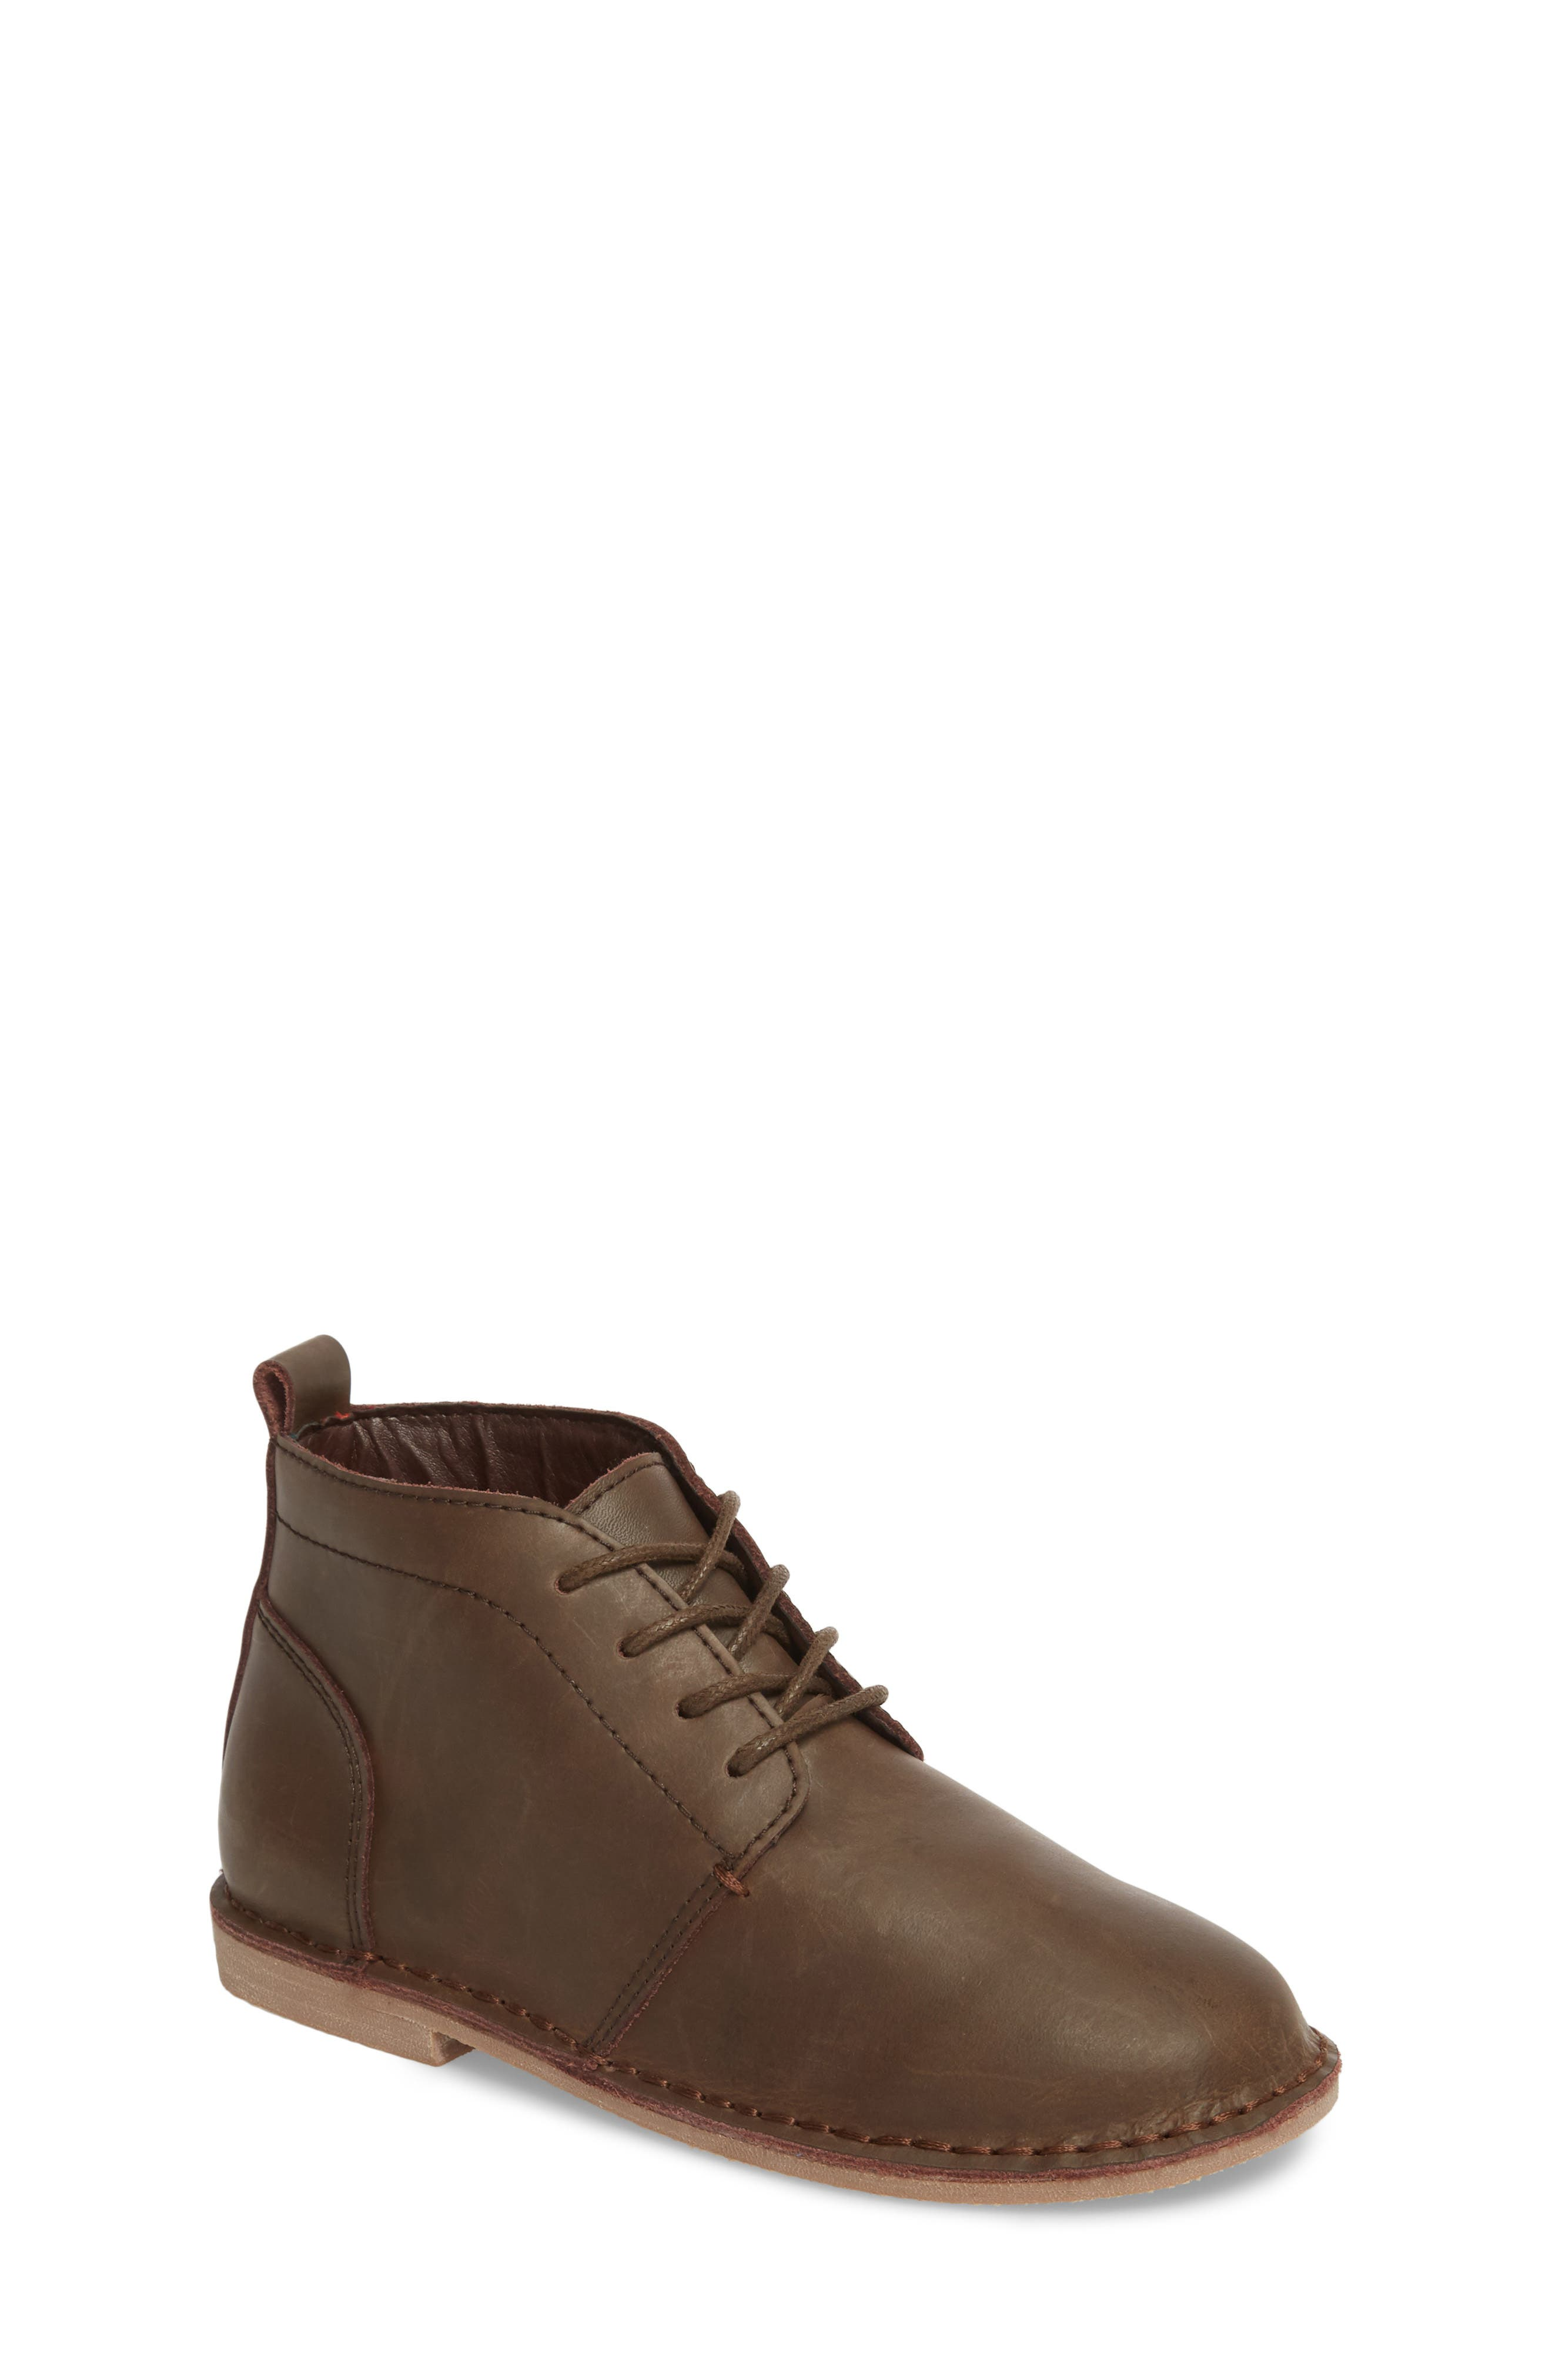 Finley Boot,                             Main thumbnail 1, color,                             Chocolate Leather